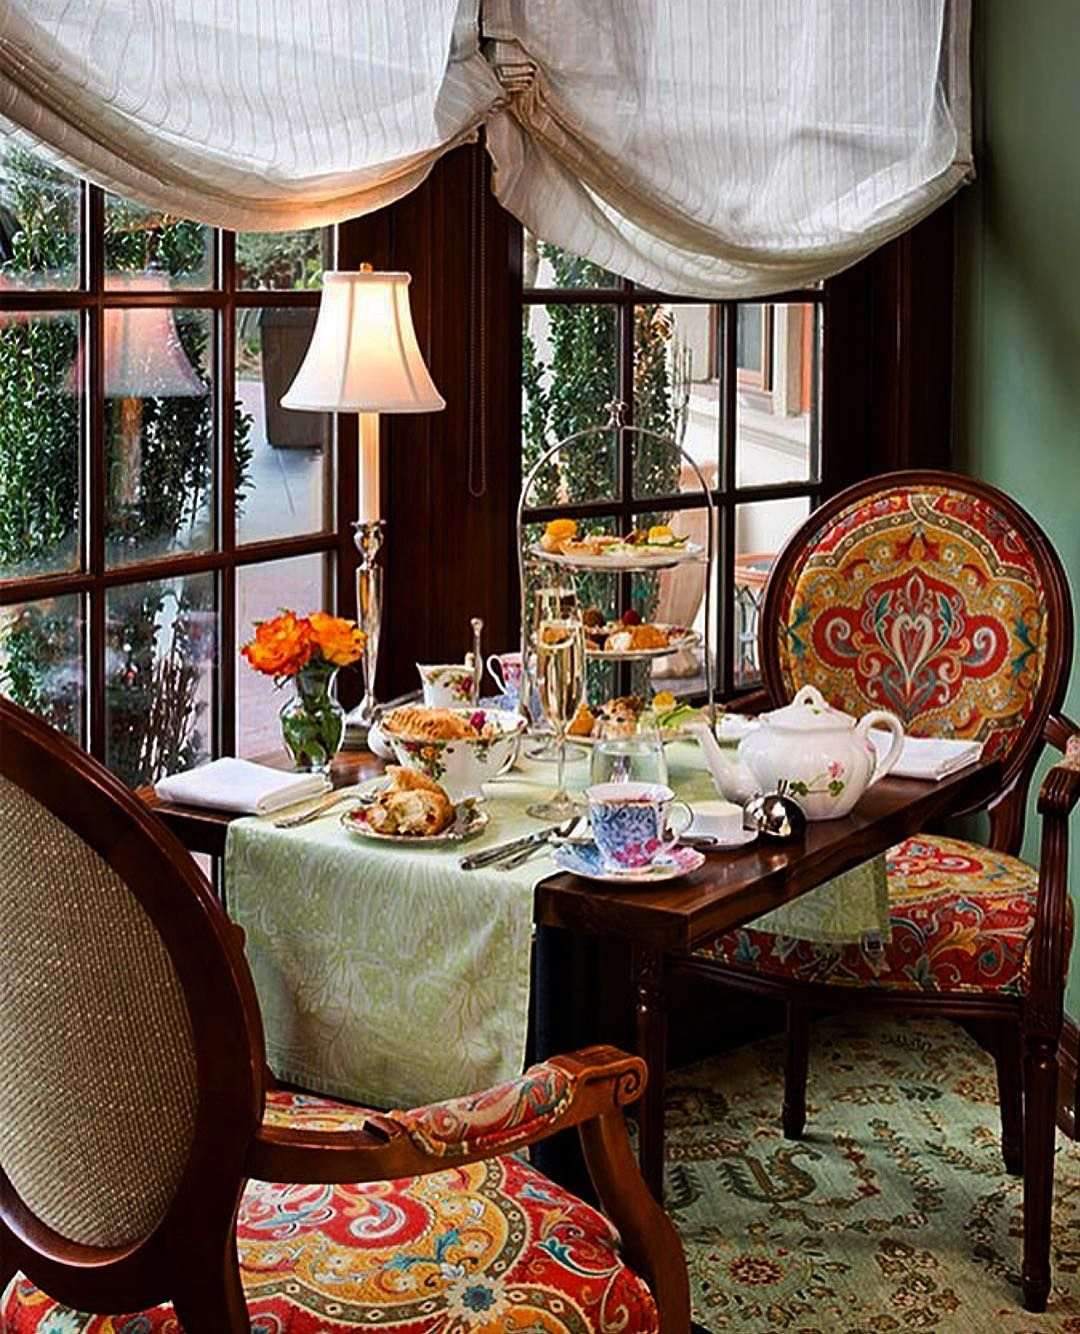 Afternoon Tea Is An Special Moment At The Hotel Granduca